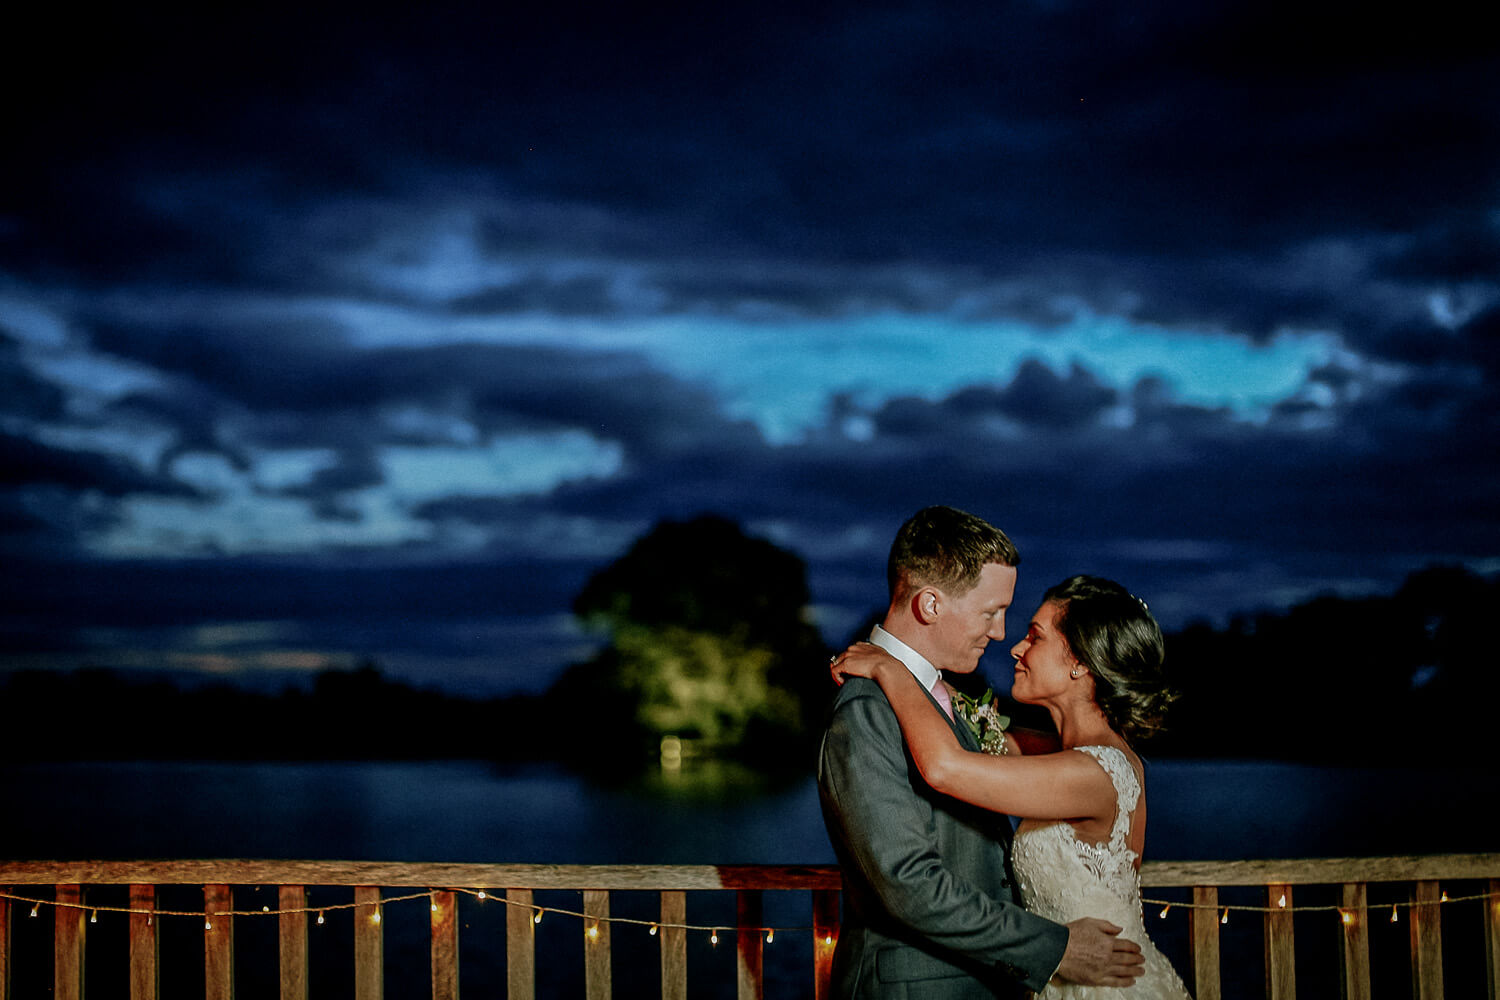 Bride and groom blue sky at night with lake and tree in background. Sandhole Oak Barn wedding photography